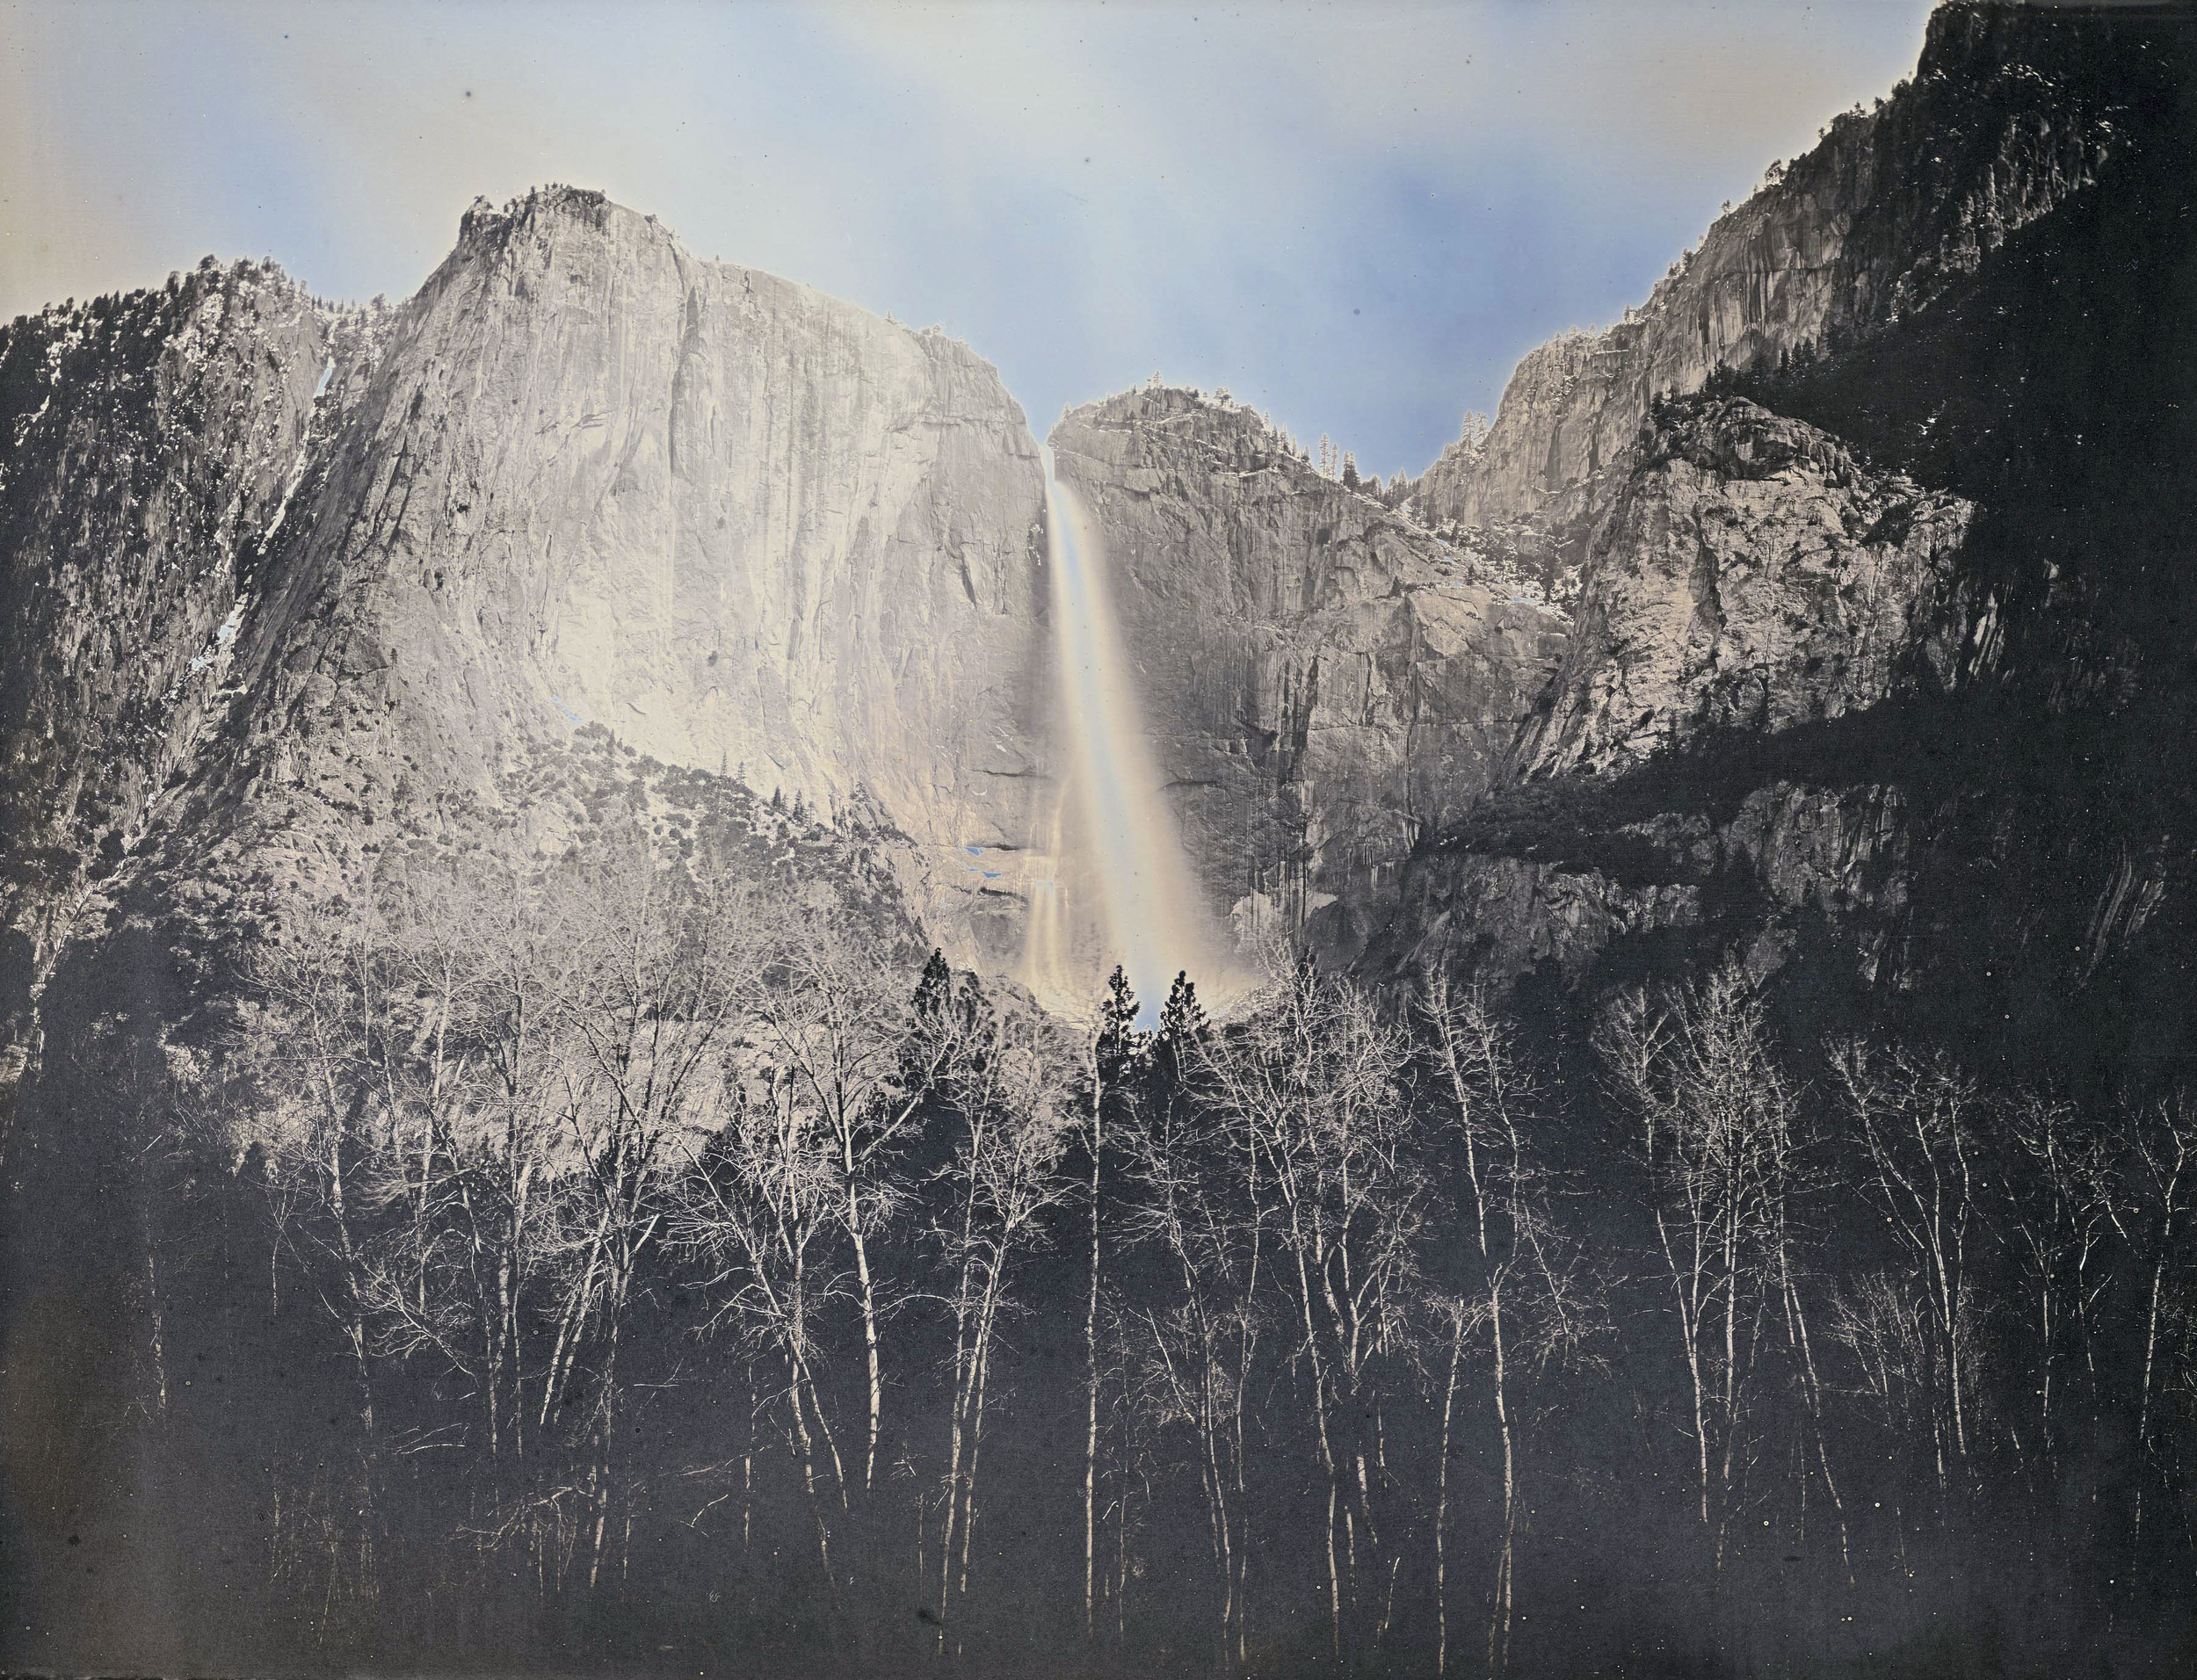 bd.YosemiteFalls_April15,2012.jpg